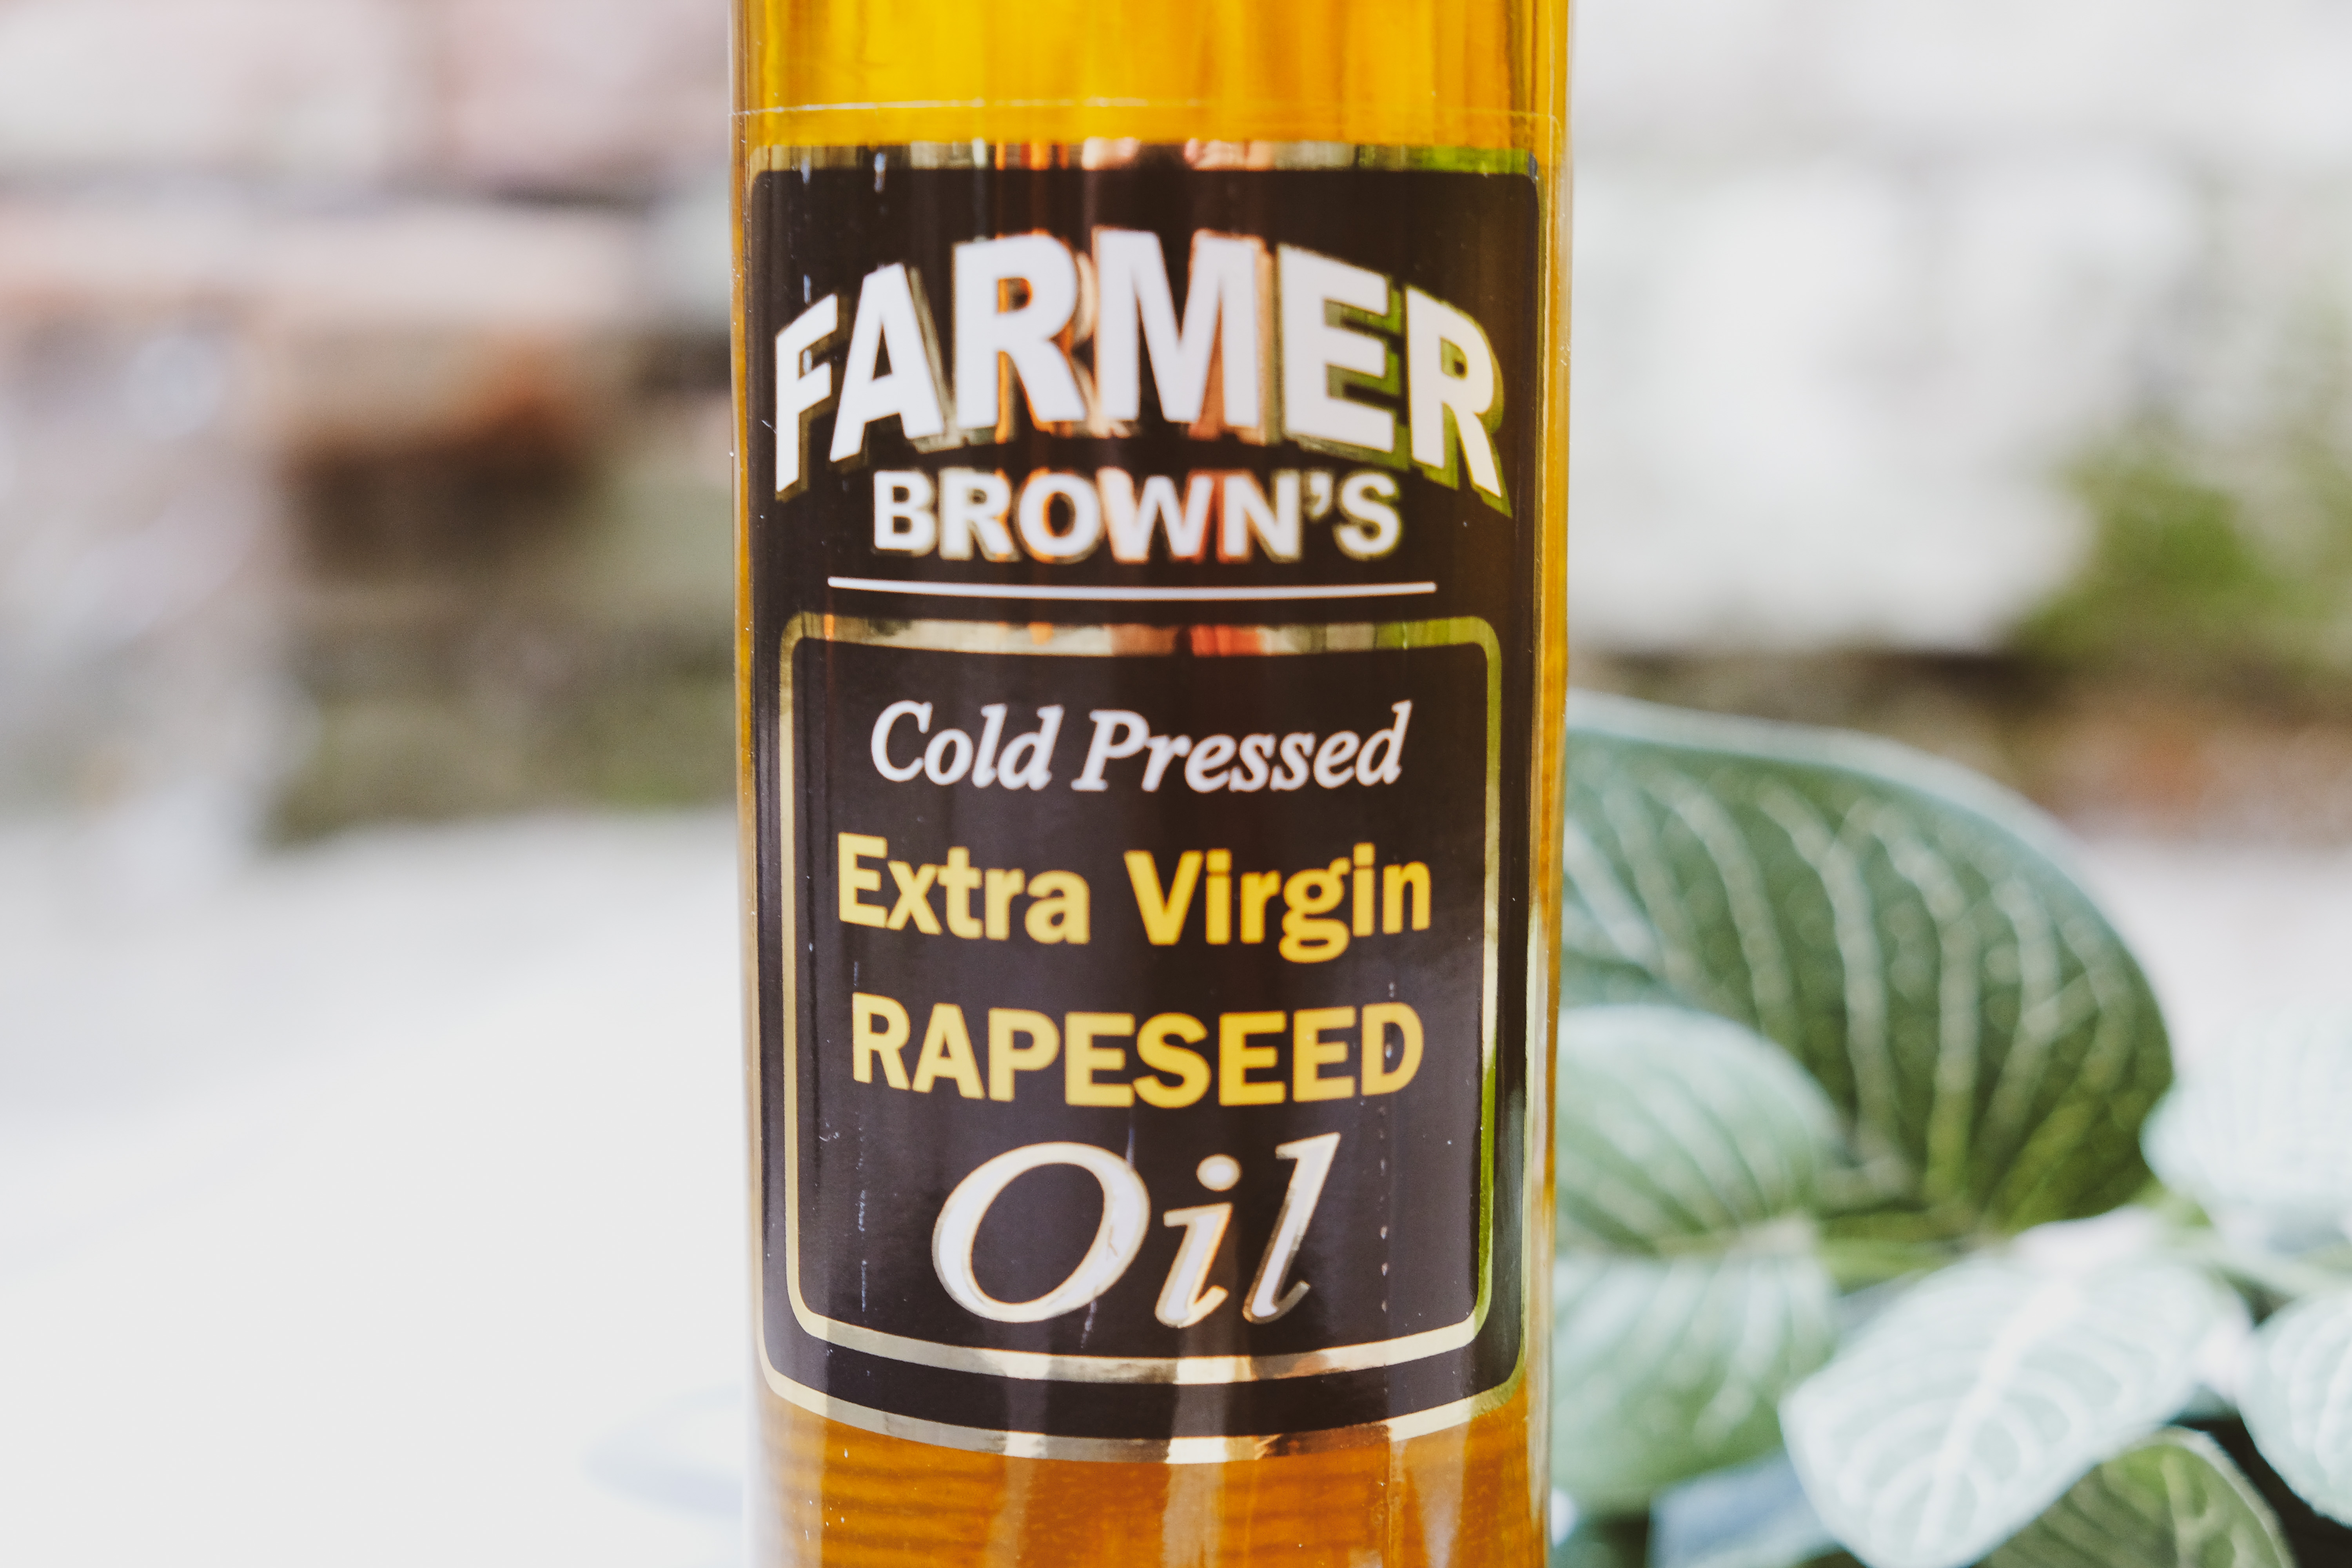 Farmer Brown's extra virgin rapeseed oil available at the Essex Produce Co. in Kelvedon, Essex.